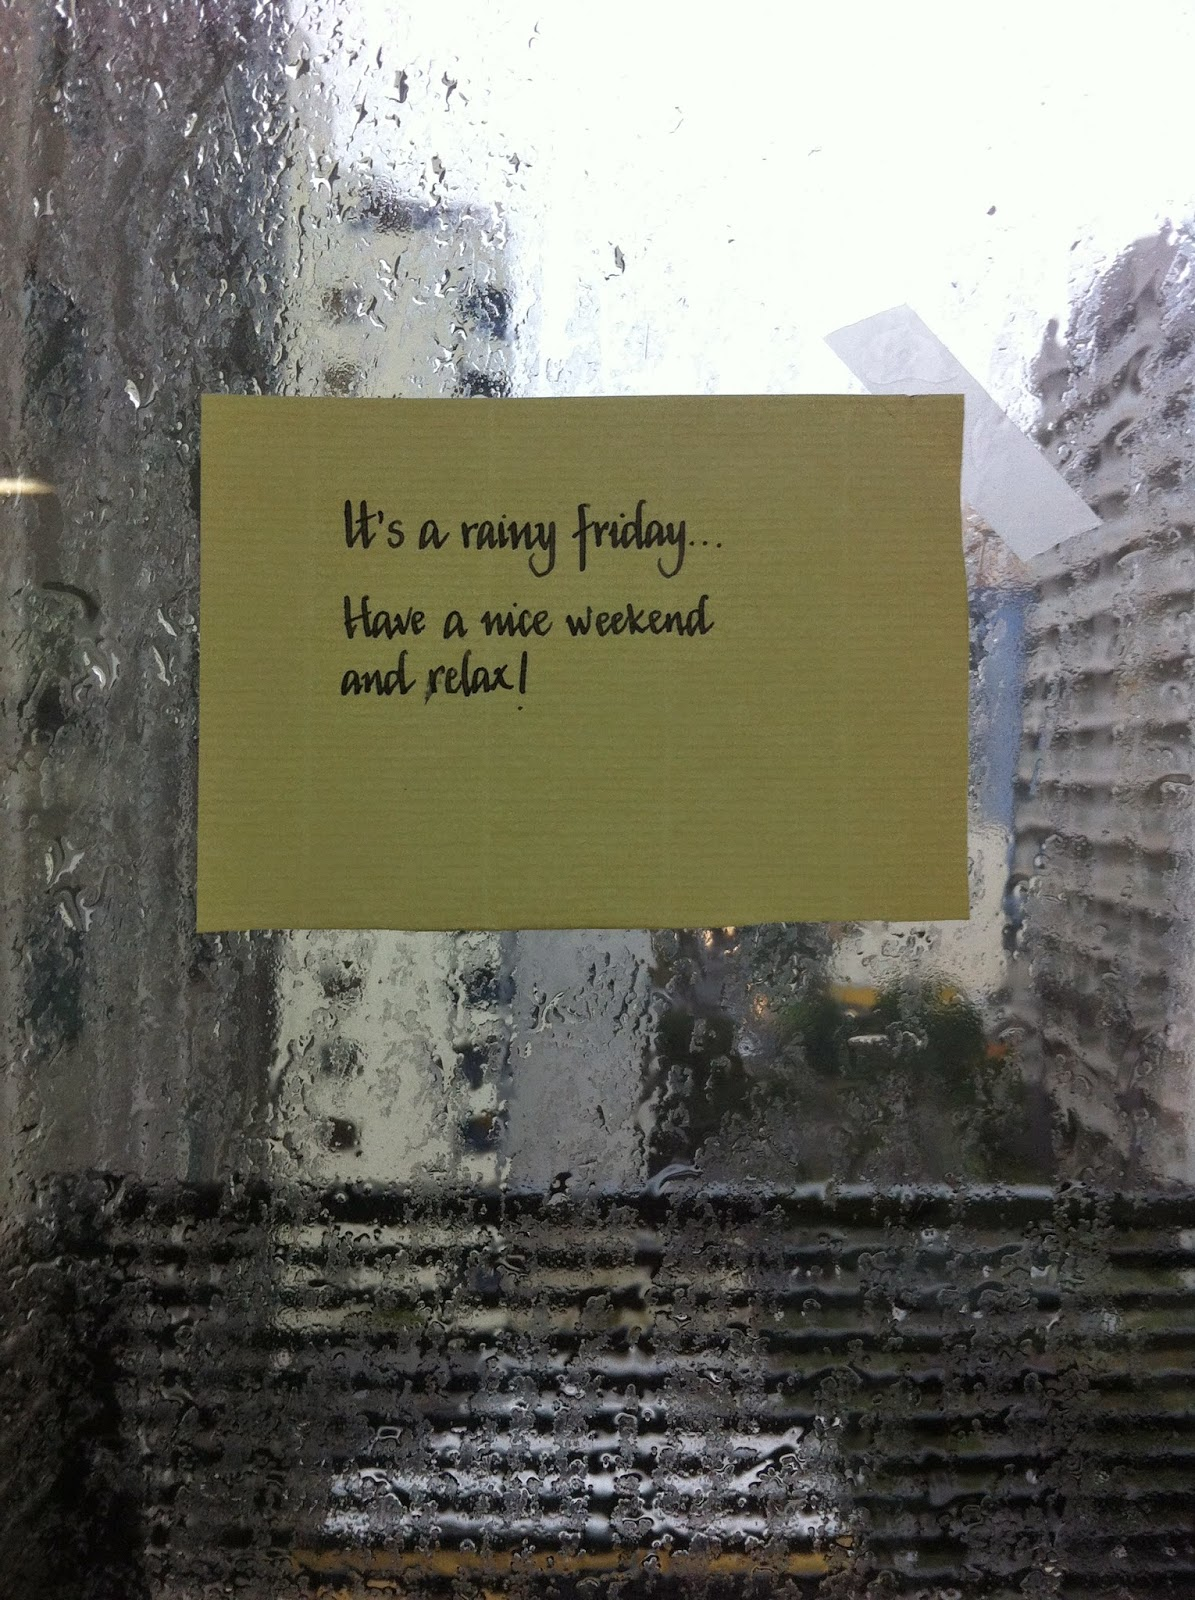 It's a rainy friday... Have a nice weekend and relax!